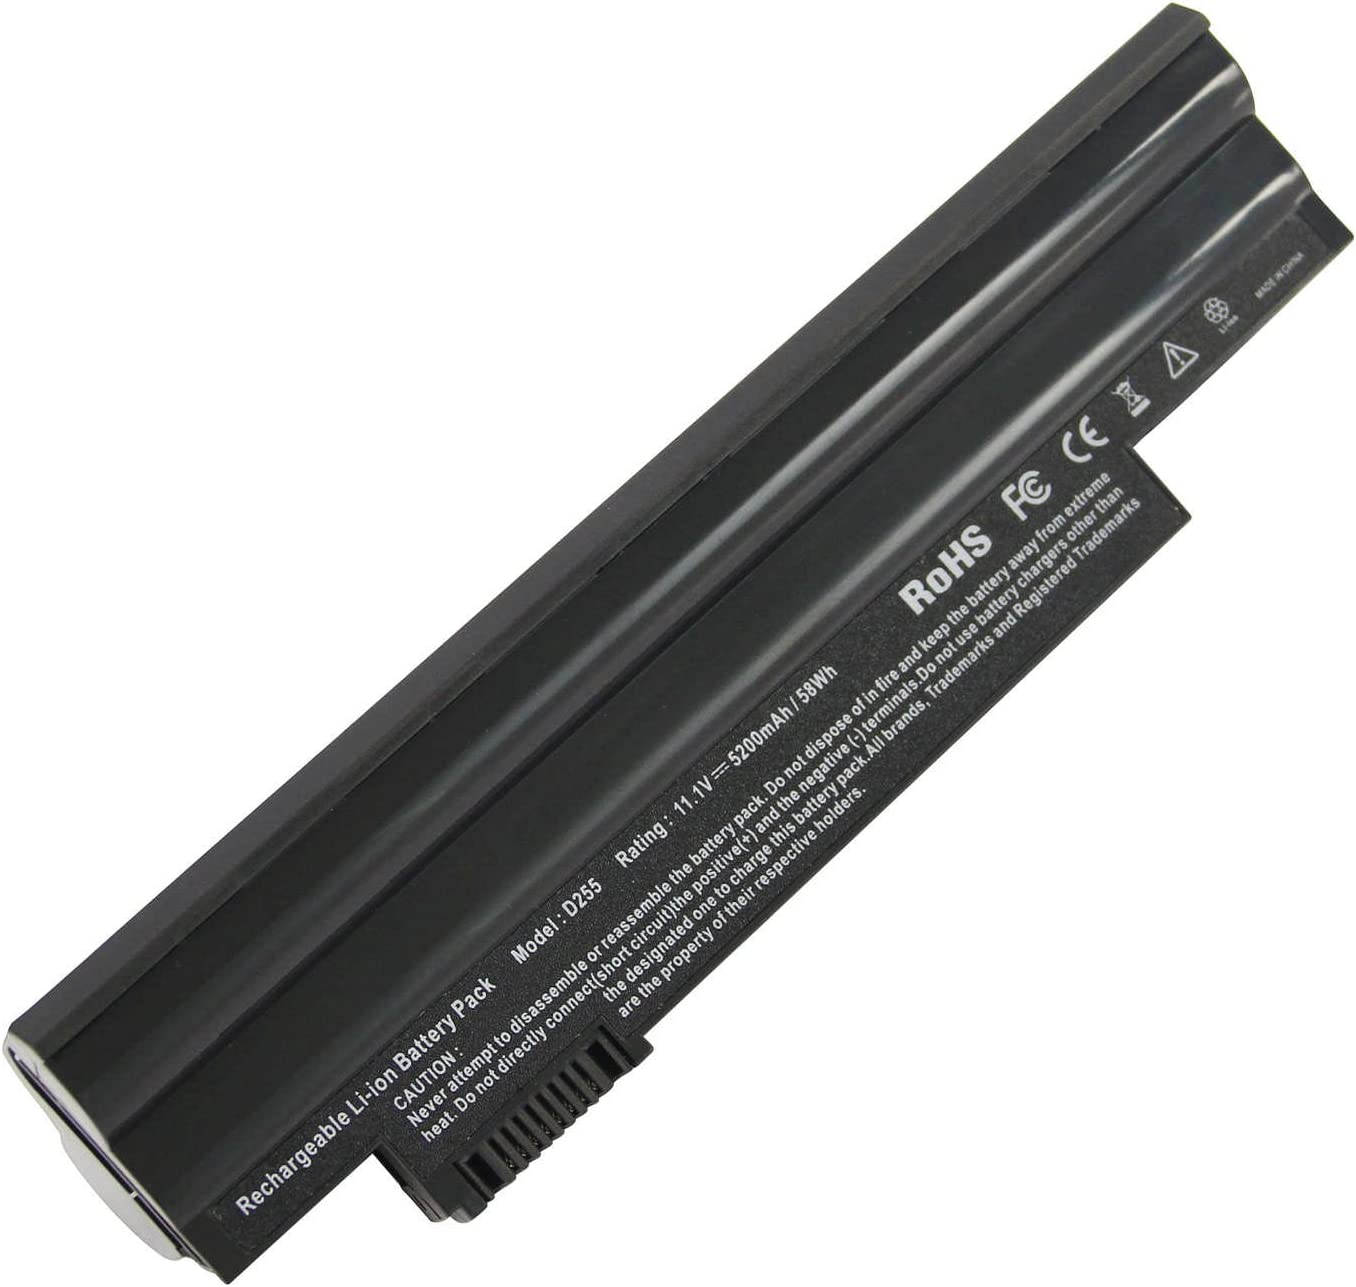 ARyee AL10A31 Laptop Battery for Acer Aspire One D255 D257 D260 522 722 Al10a31 Al10b31 Al10bw Al10g31 BT.00303.022 BT.00603.114 LC.BTP00.129 LC.BTP0A.007 LC.BTP0A.019